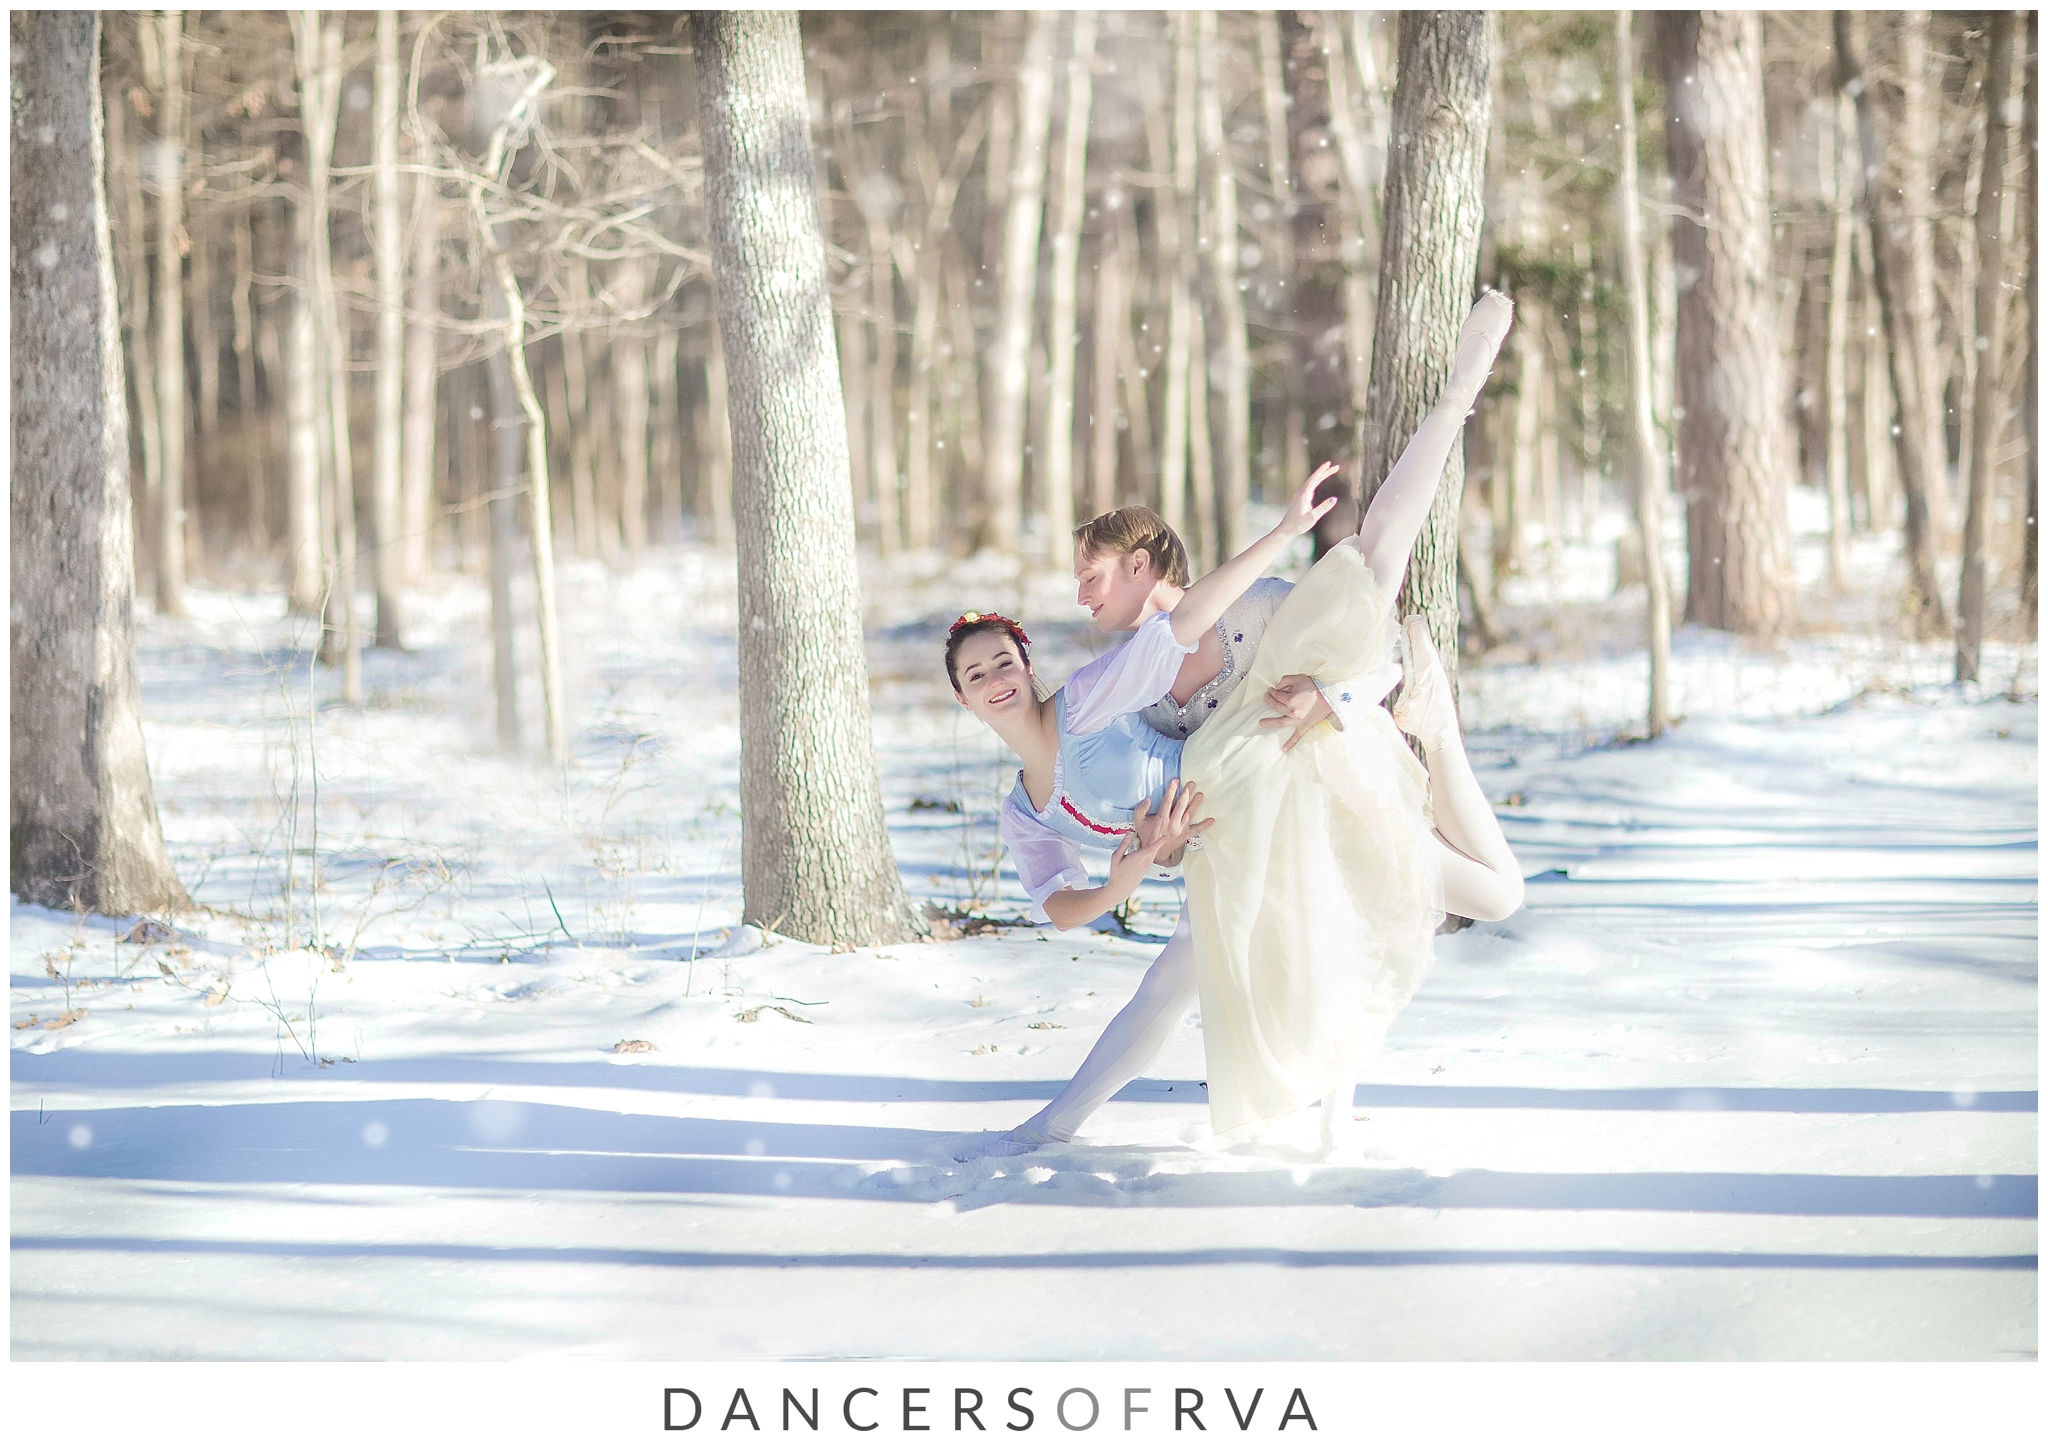 Richmond-Dance-Photography-Snow-White-Stanva-Modlin-Gianna-Grace-Photography_0008.jpg